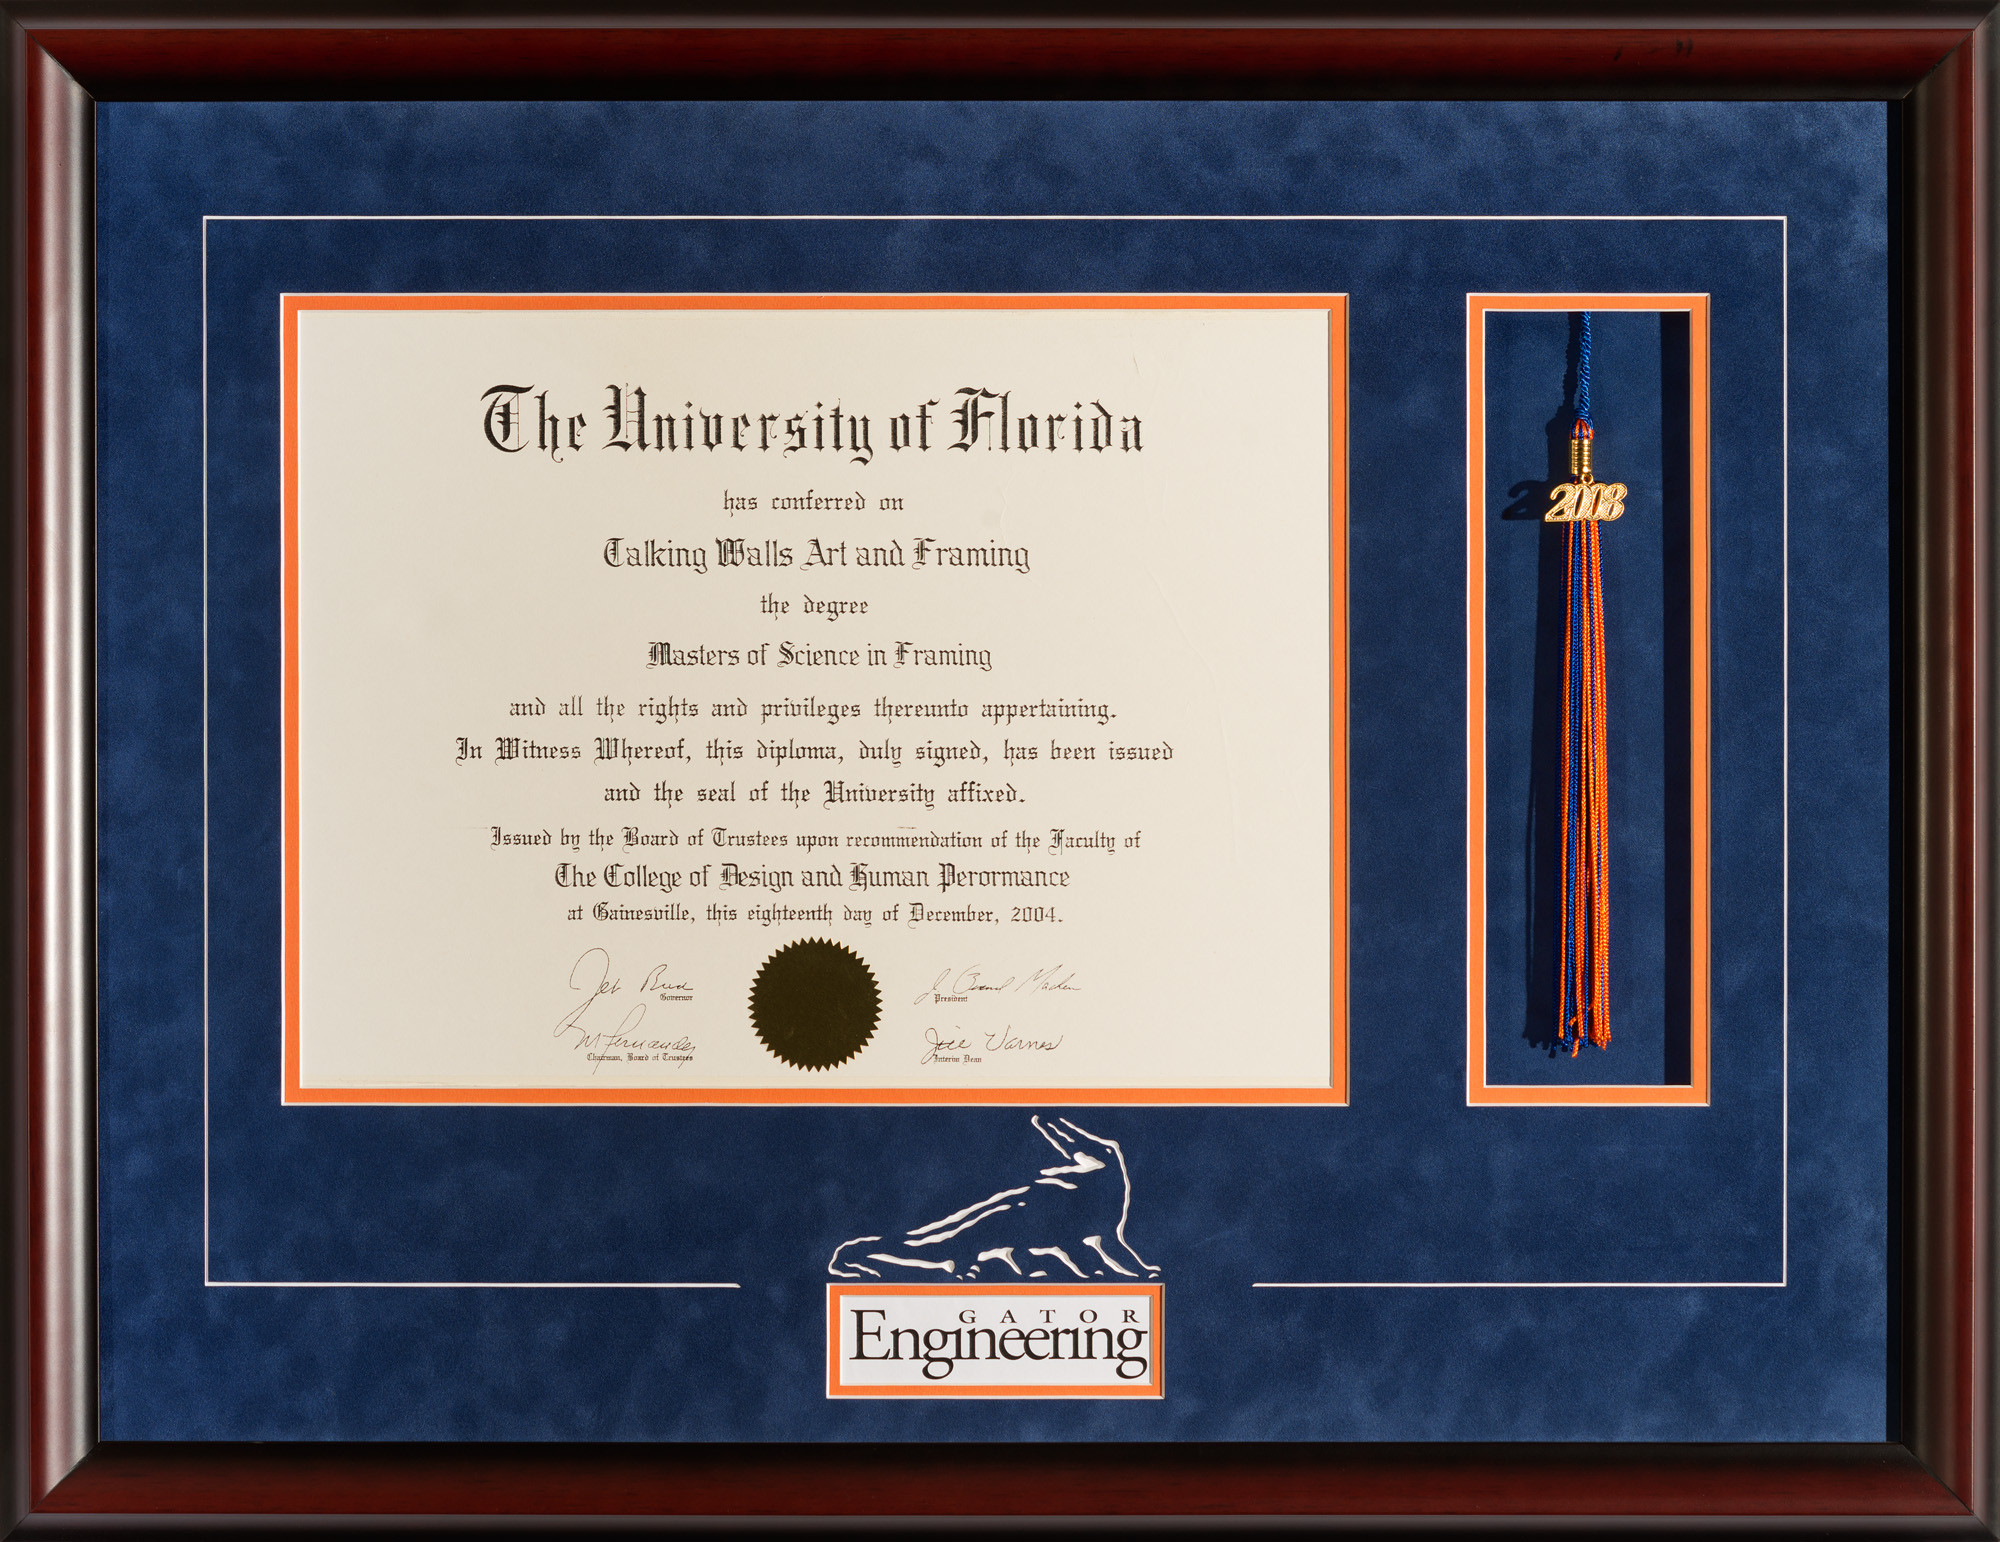 University Of Florida Diploma Frame With Engineering Logo